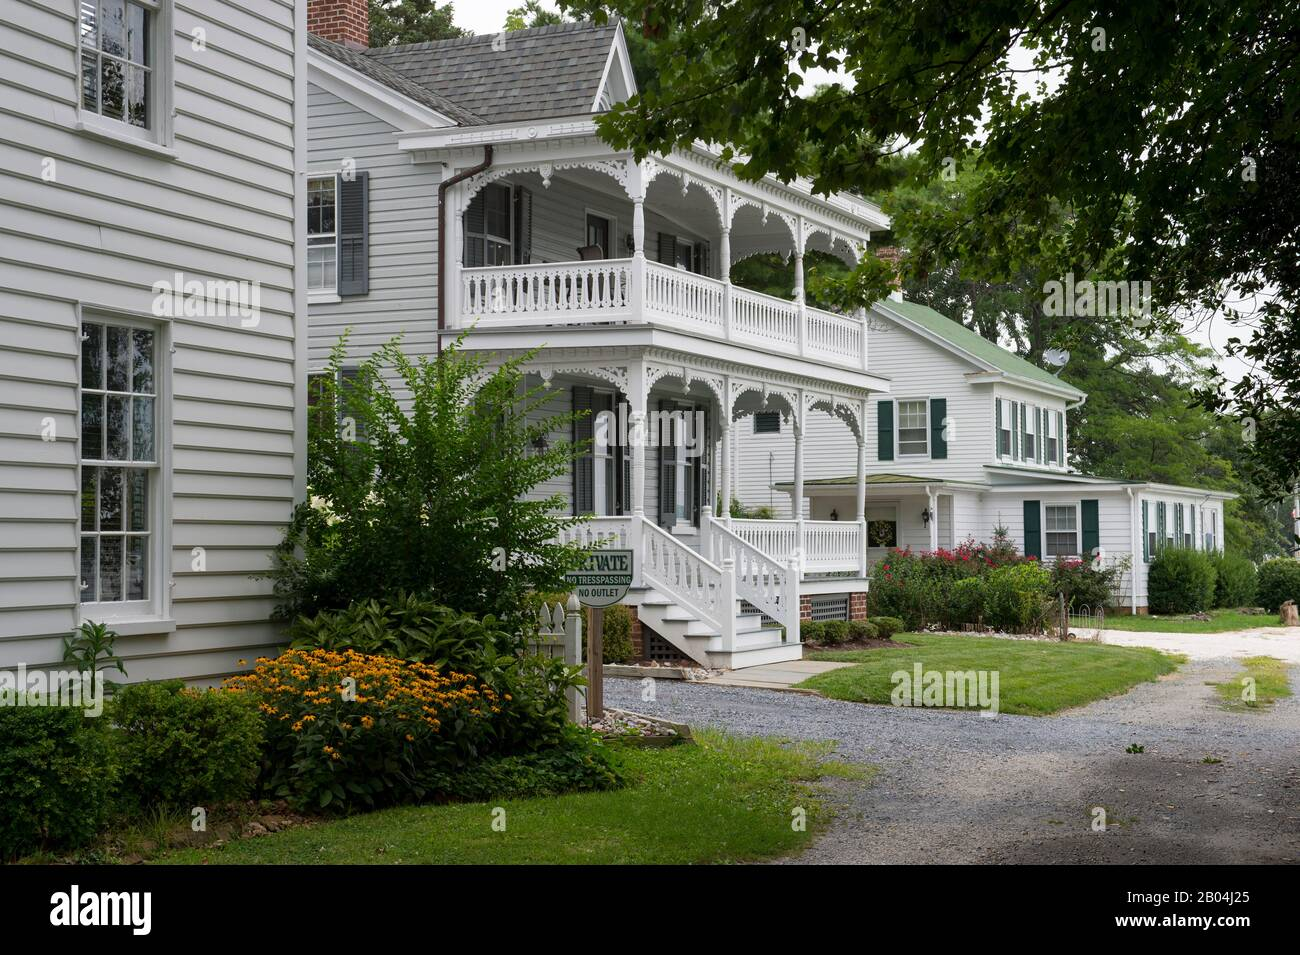 Historic houses at Navy Point in St. Michaels, a historic town in Maryland, USA, situated on Chesapeake Bay. Stock Photo